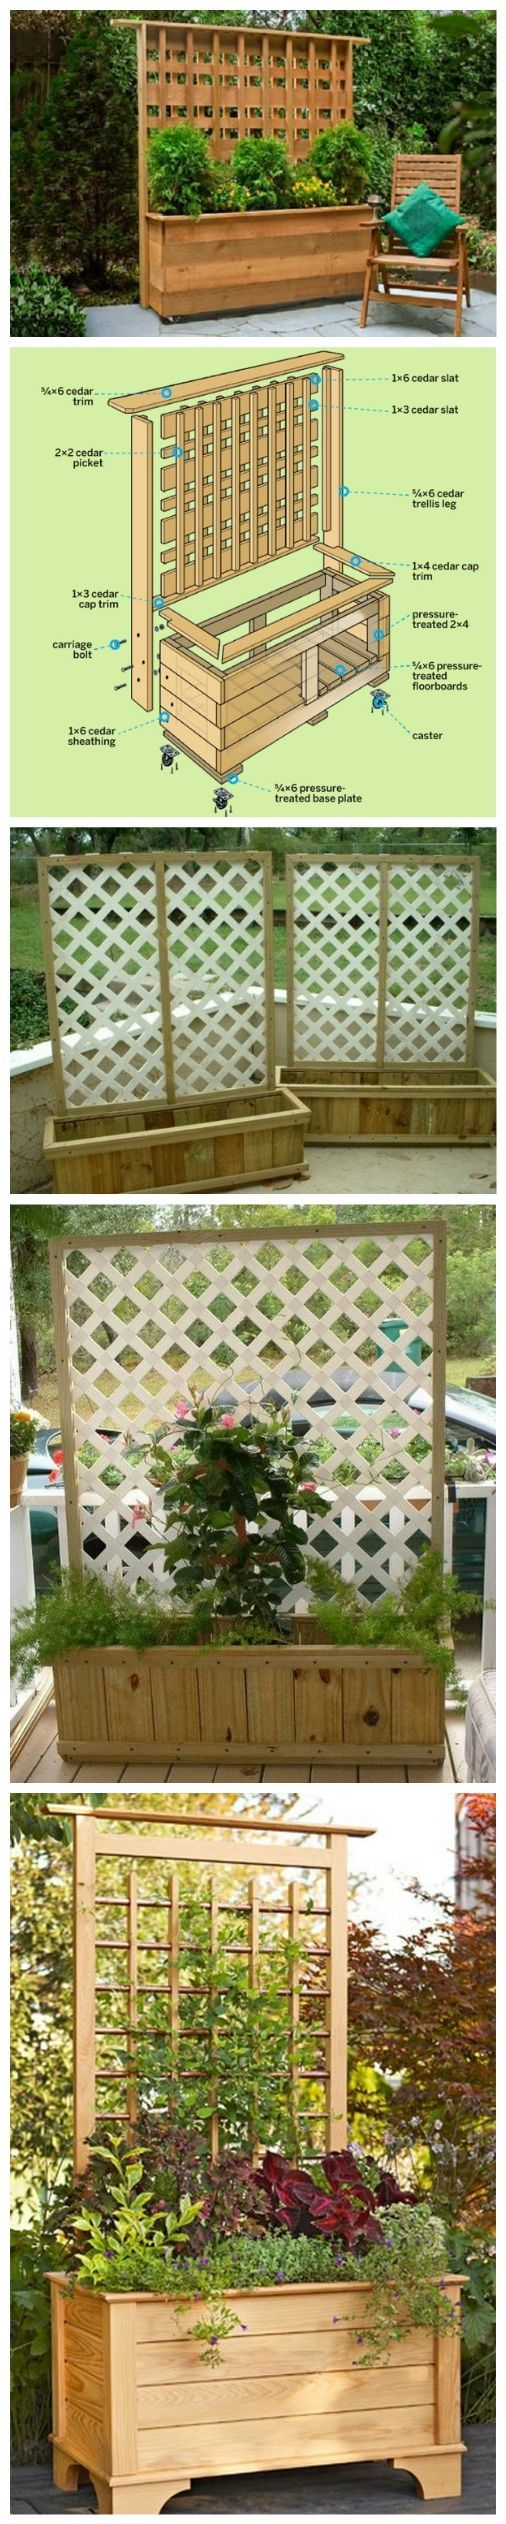 DIY Privacy Planter